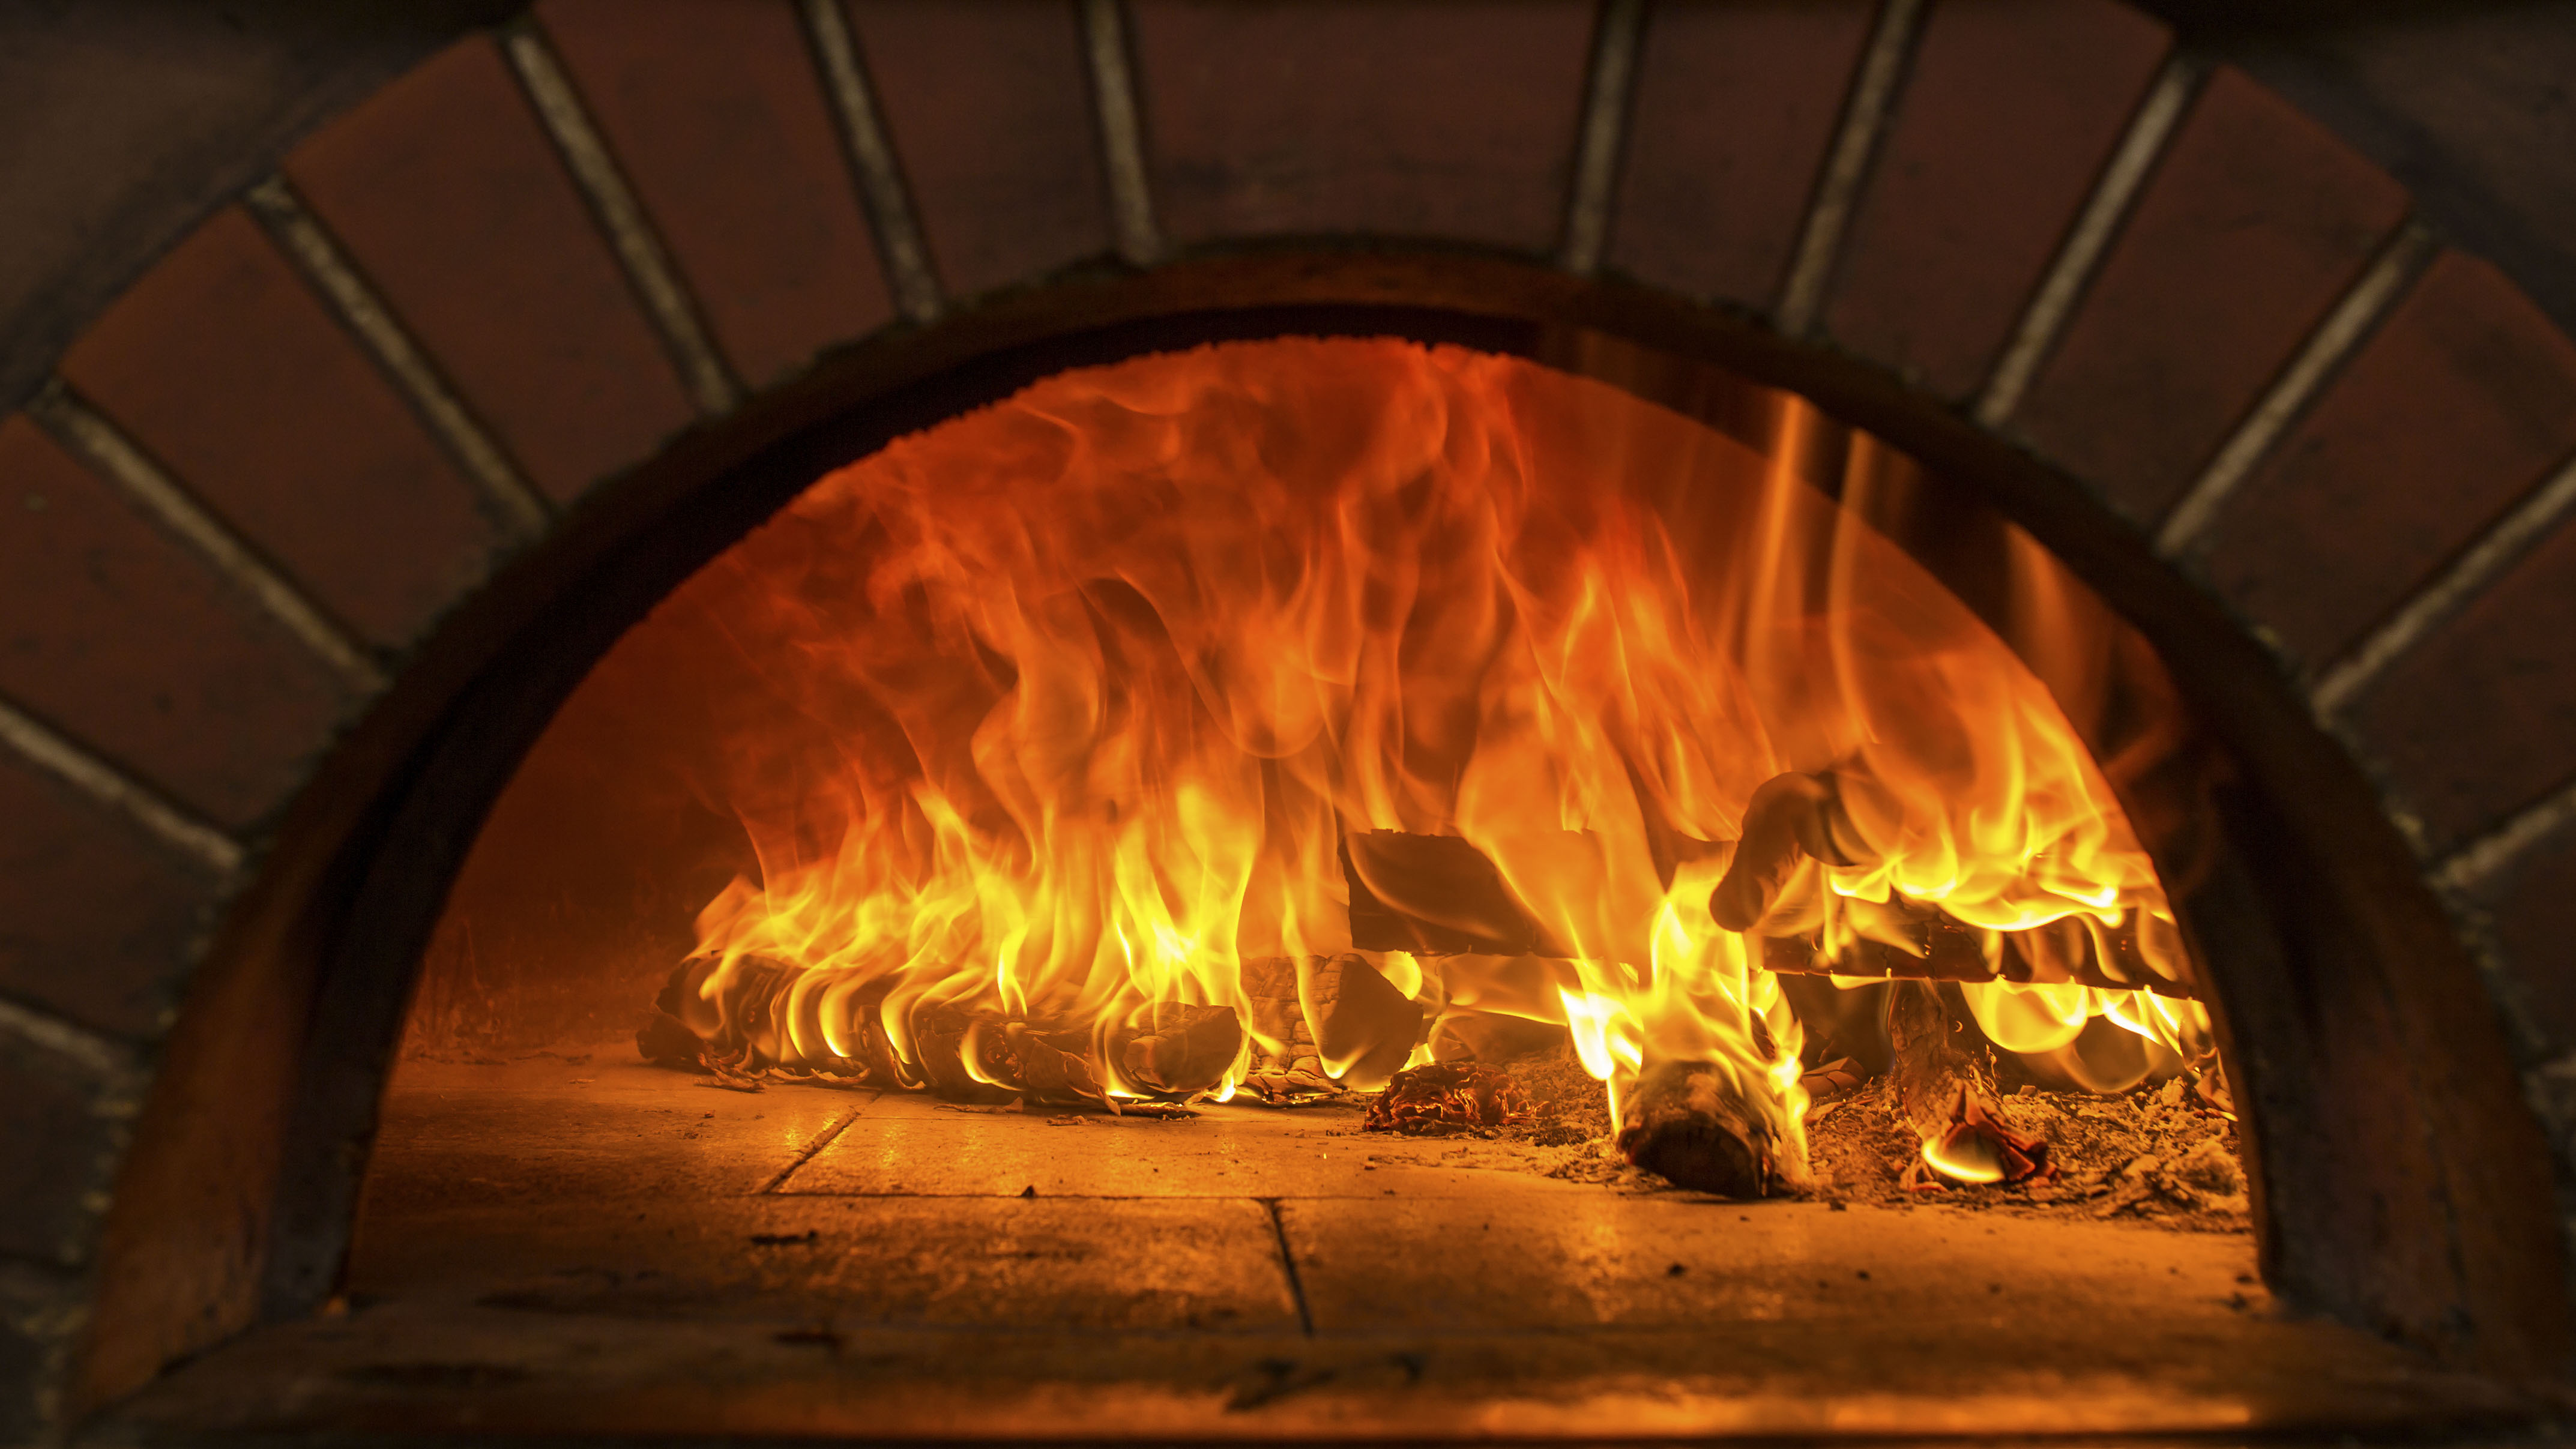 Very busy Licenced Woodfire Pizzeria - Restaurant - Steakhouse - Takeaway